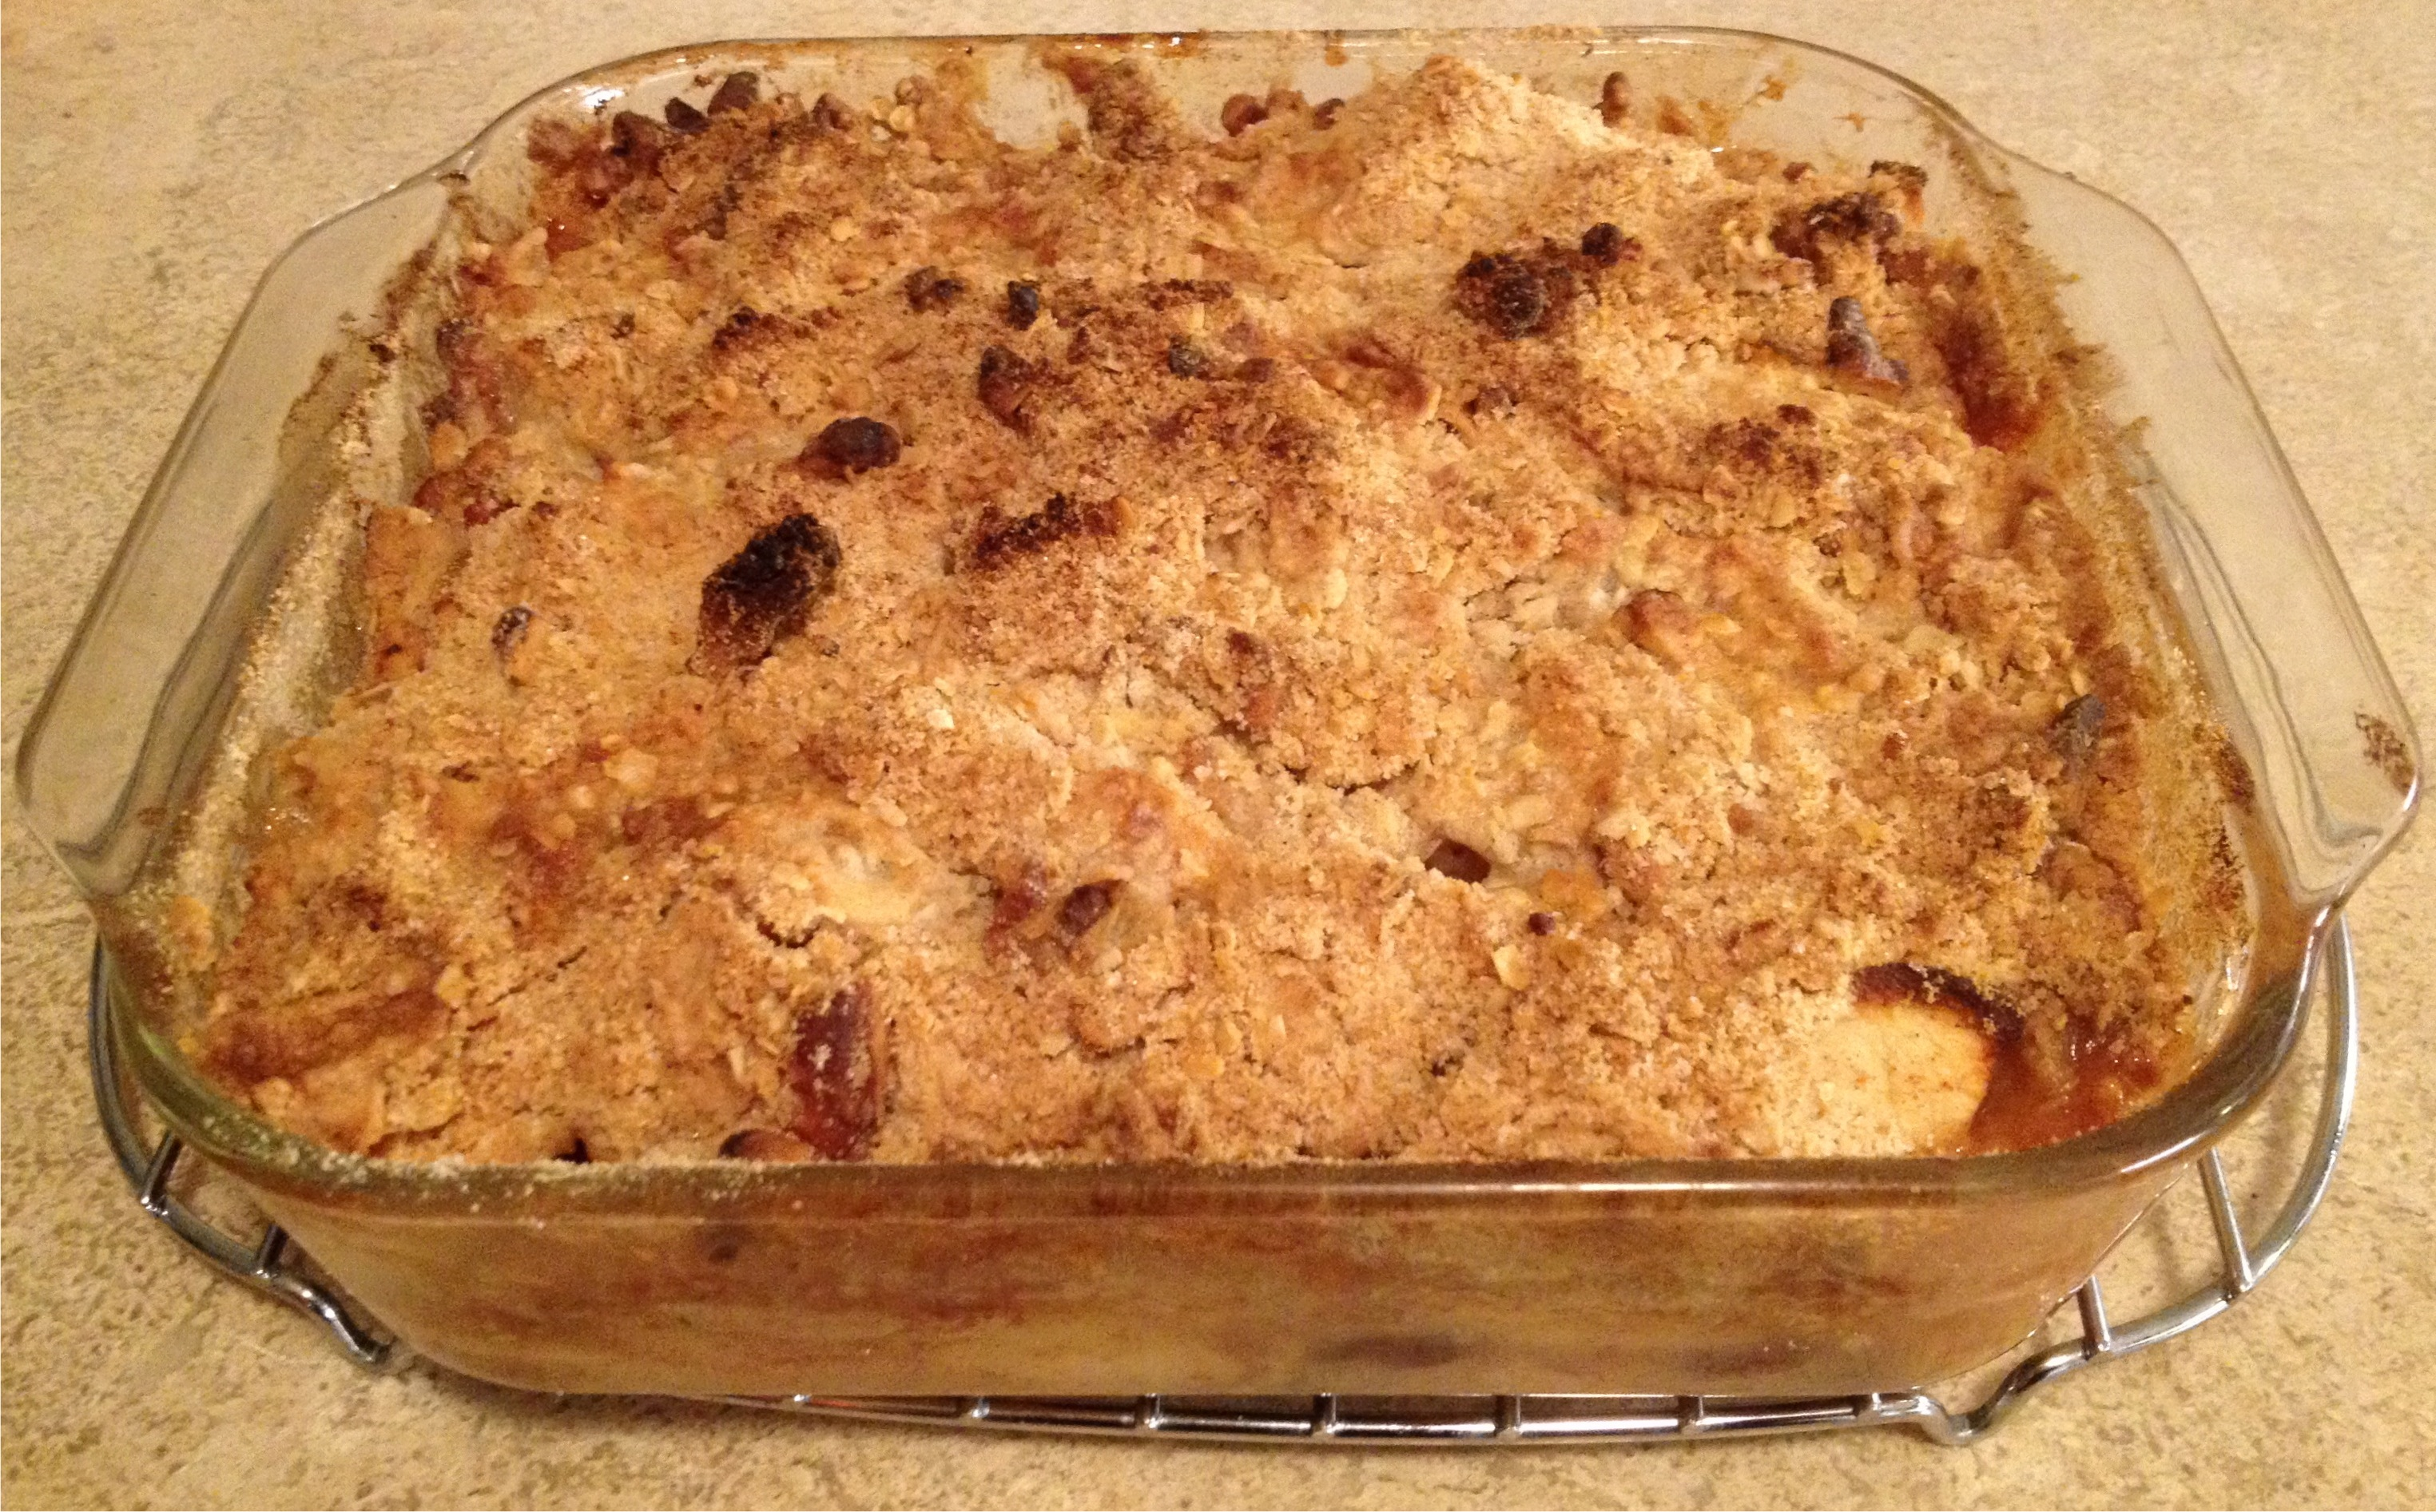 Apple crisp just out of the oven.